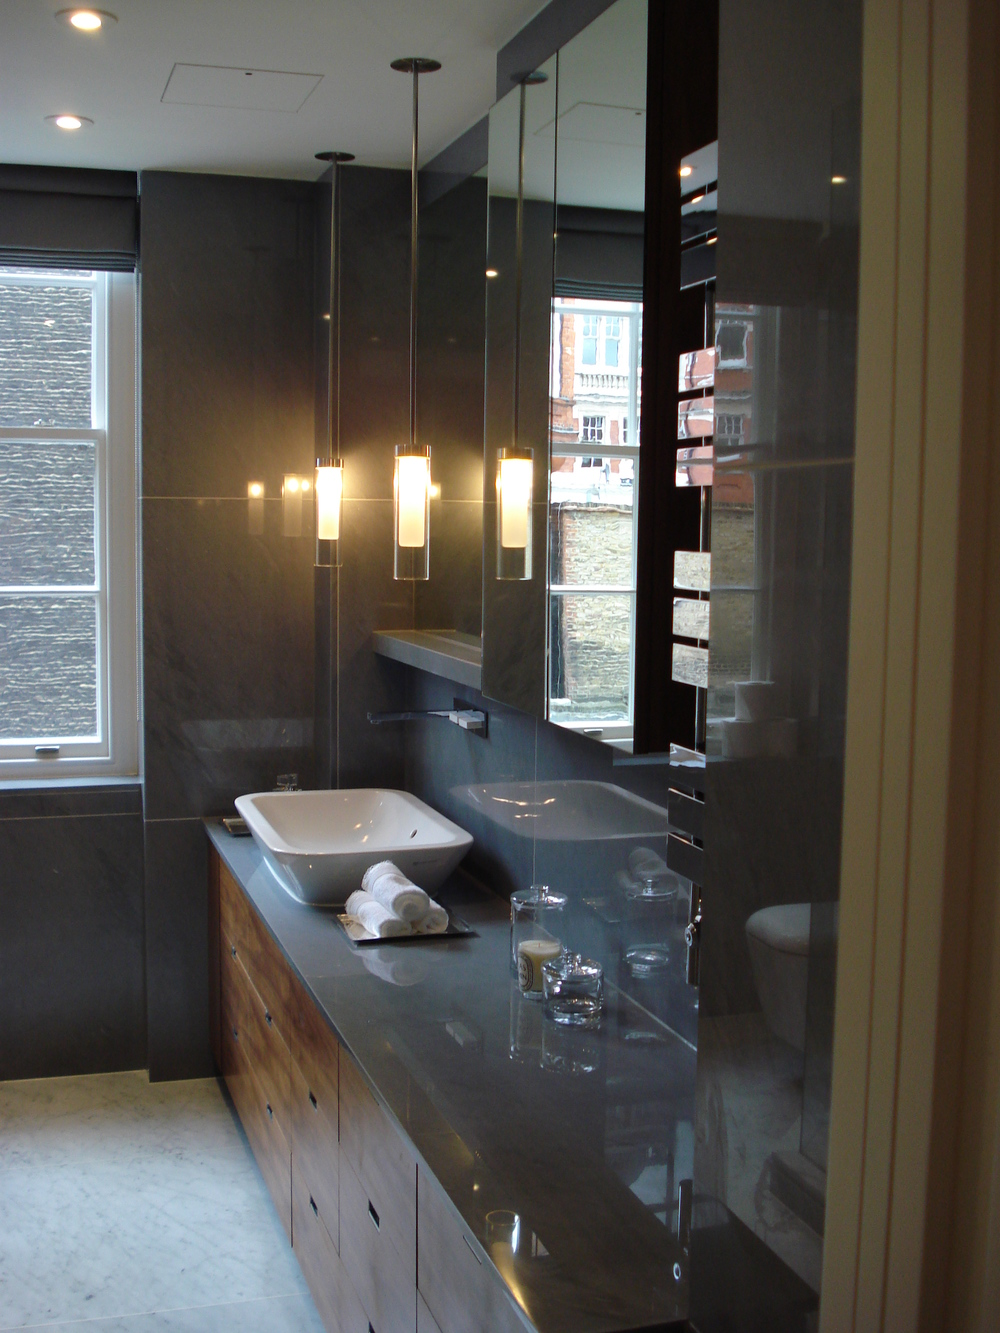 Bathroom refurn.JPG